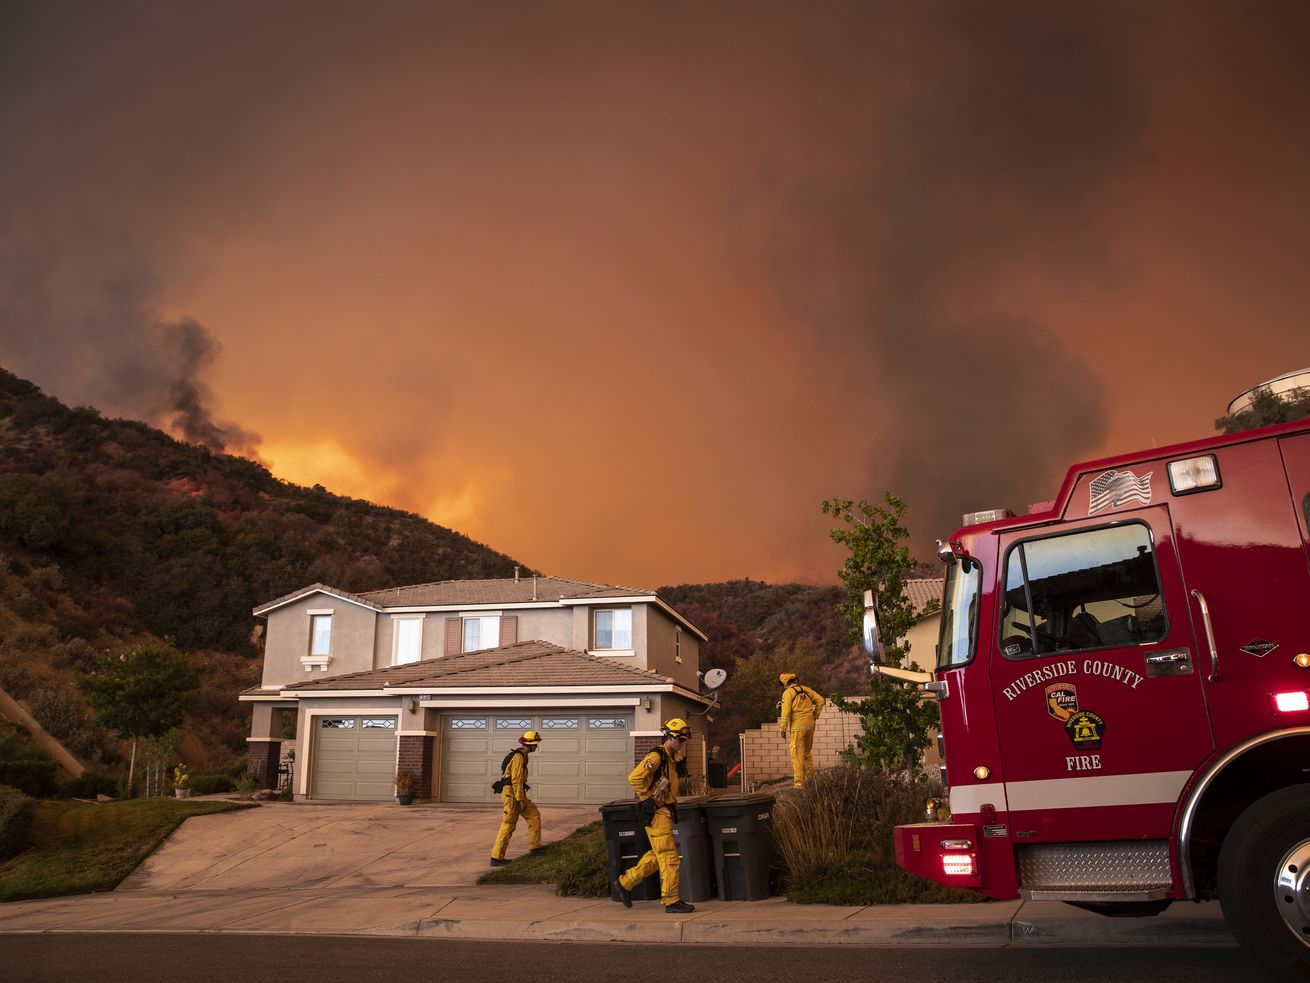 A suburban home with a three-car garage sits on a street with embers and the glow of fire in the background. A red fire truck sits in the photo's foreground.